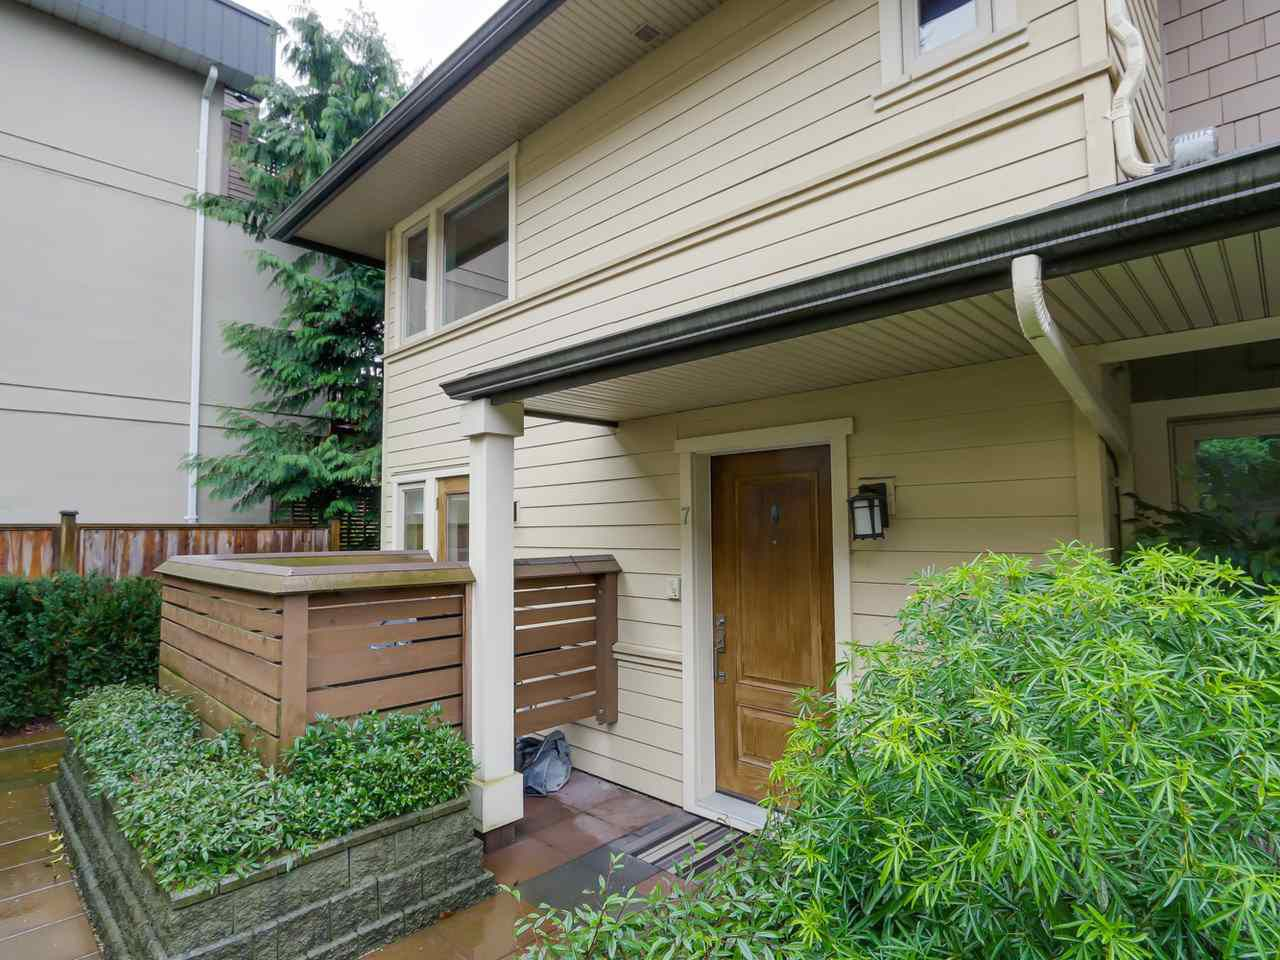 """Main Photo: 7 215 E 4TH Street in North Vancouver: Lower Lonsdale Townhouse for sale in """"Orchard Terrace"""" : MLS®# R2035024"""